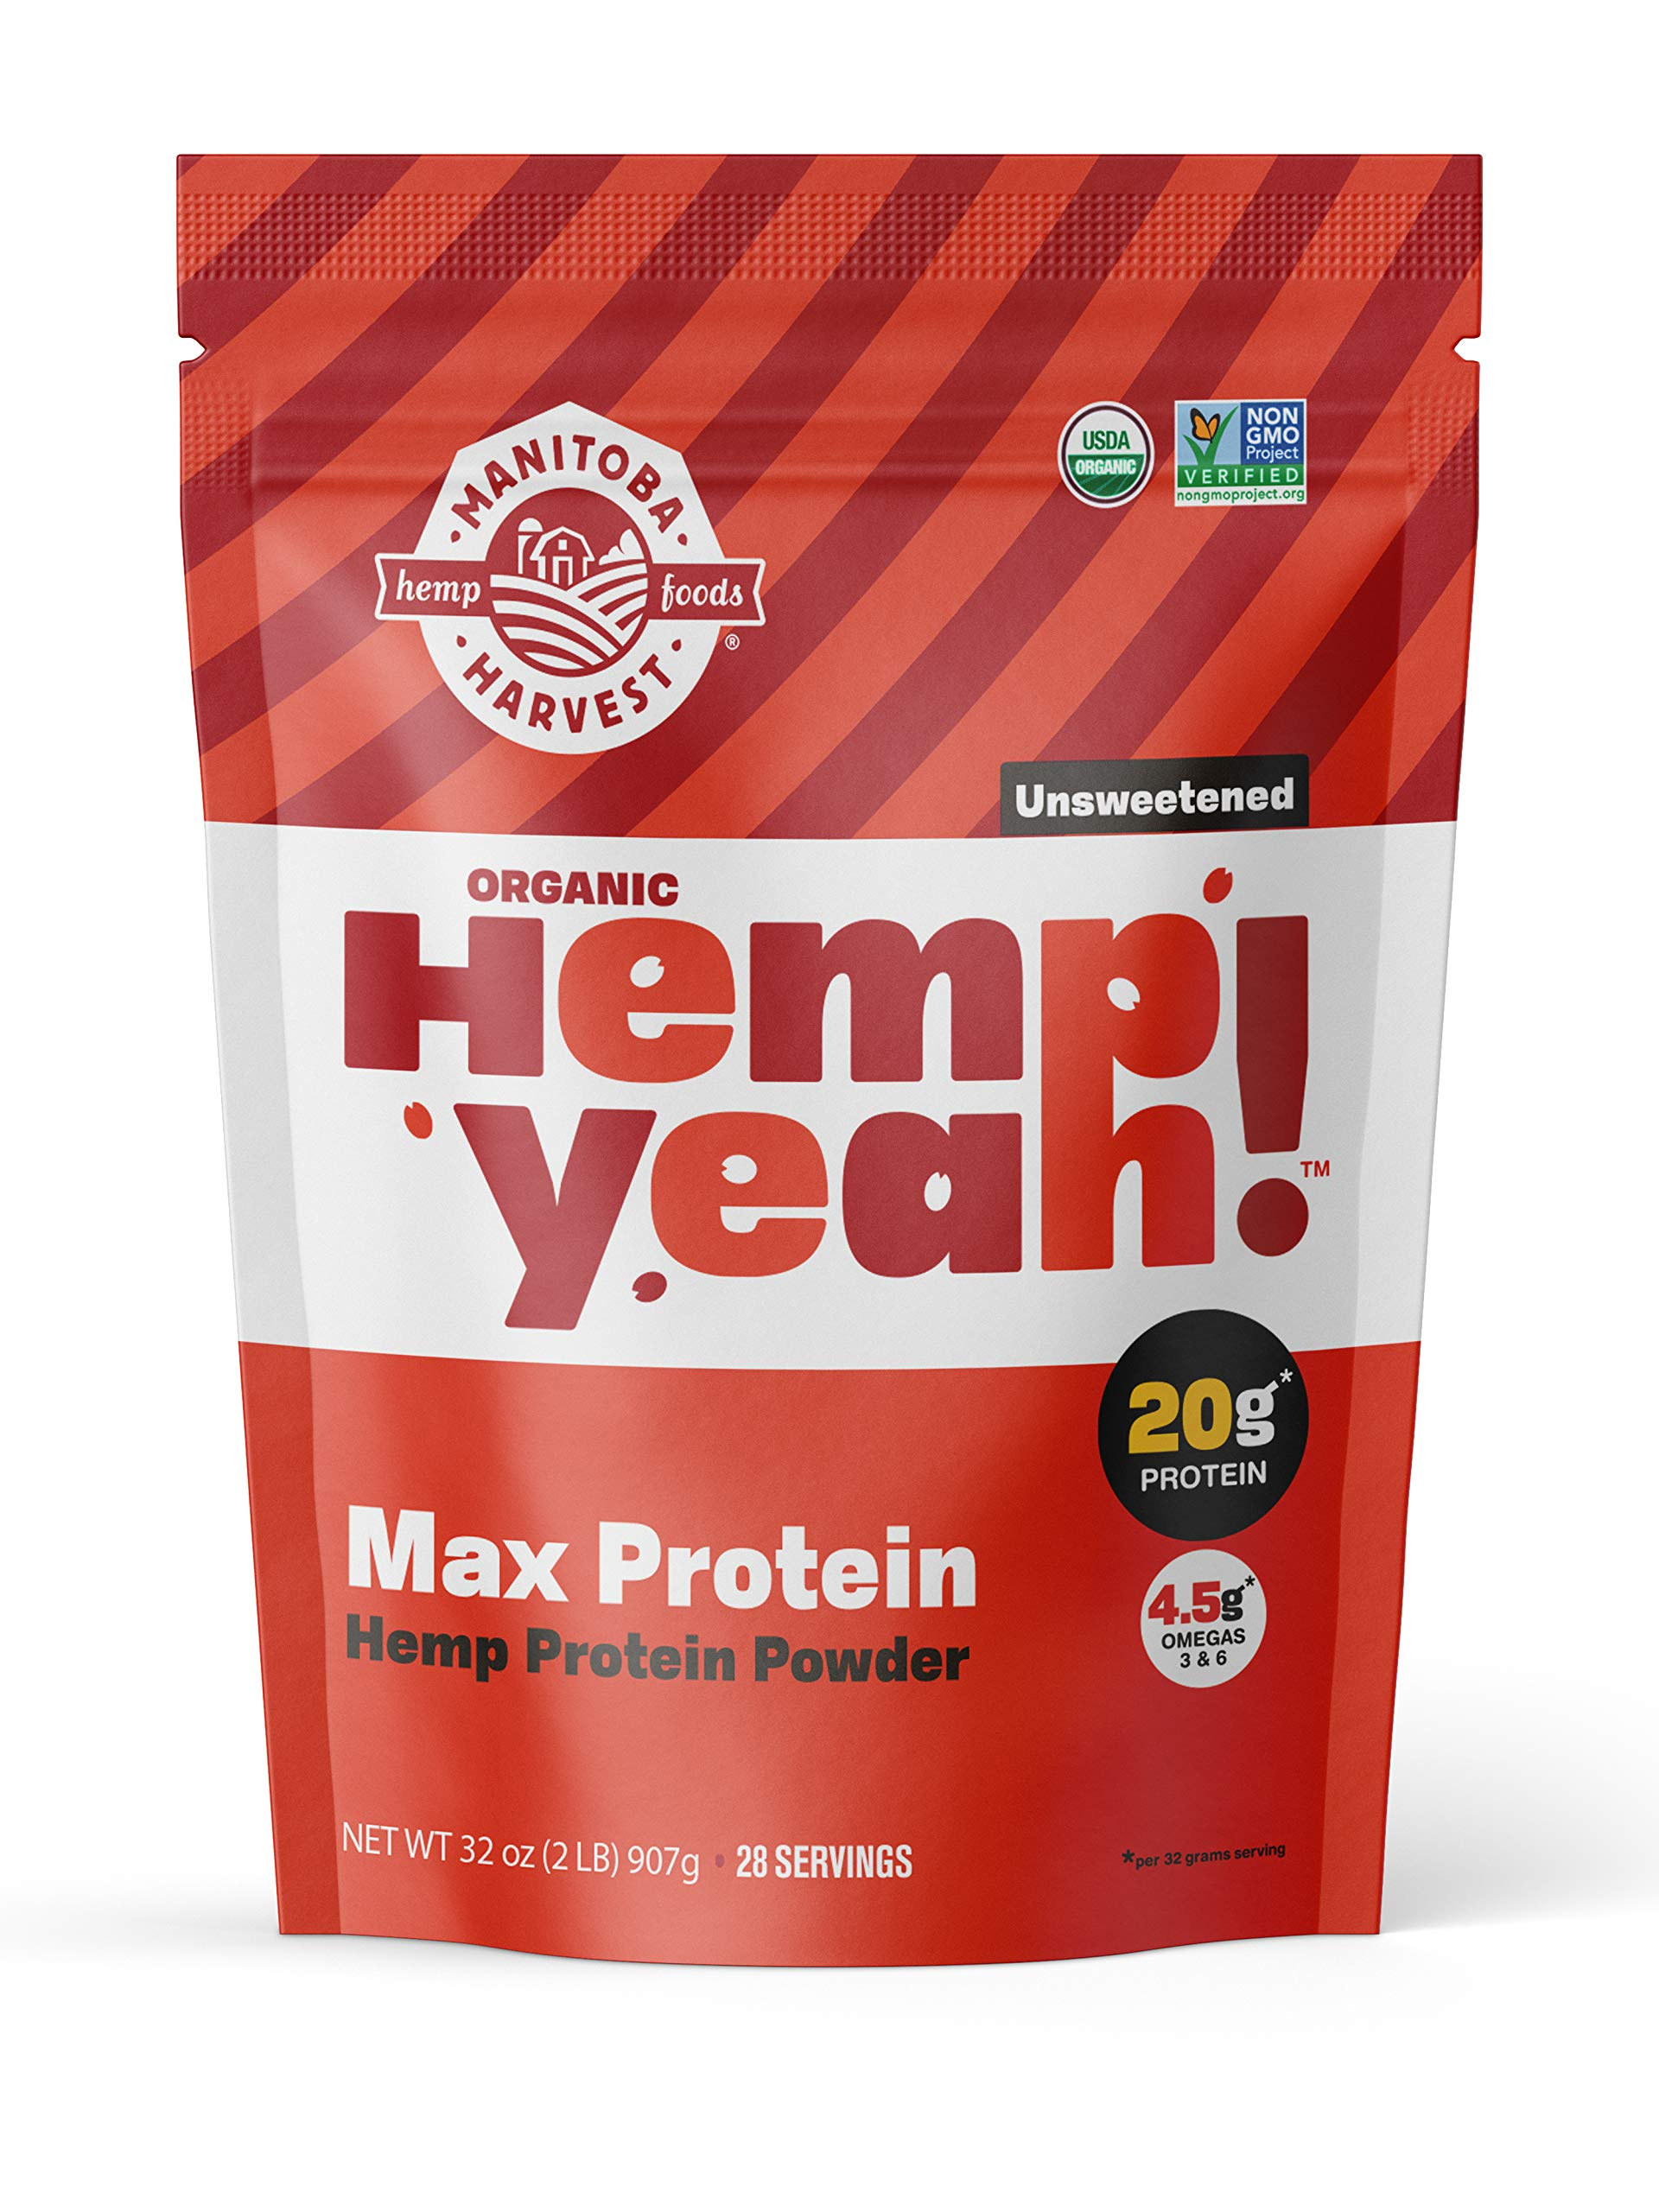 Manitoba Harvest Hemp Yeah! Organic Max Protein Protein Powder, Unsweetened, 32oz; with 20g protein and 4.5g Omegas 3&6 per Serving, Keto-Friendly, Preservative Free, Non-GMO by Manitoba Harvest